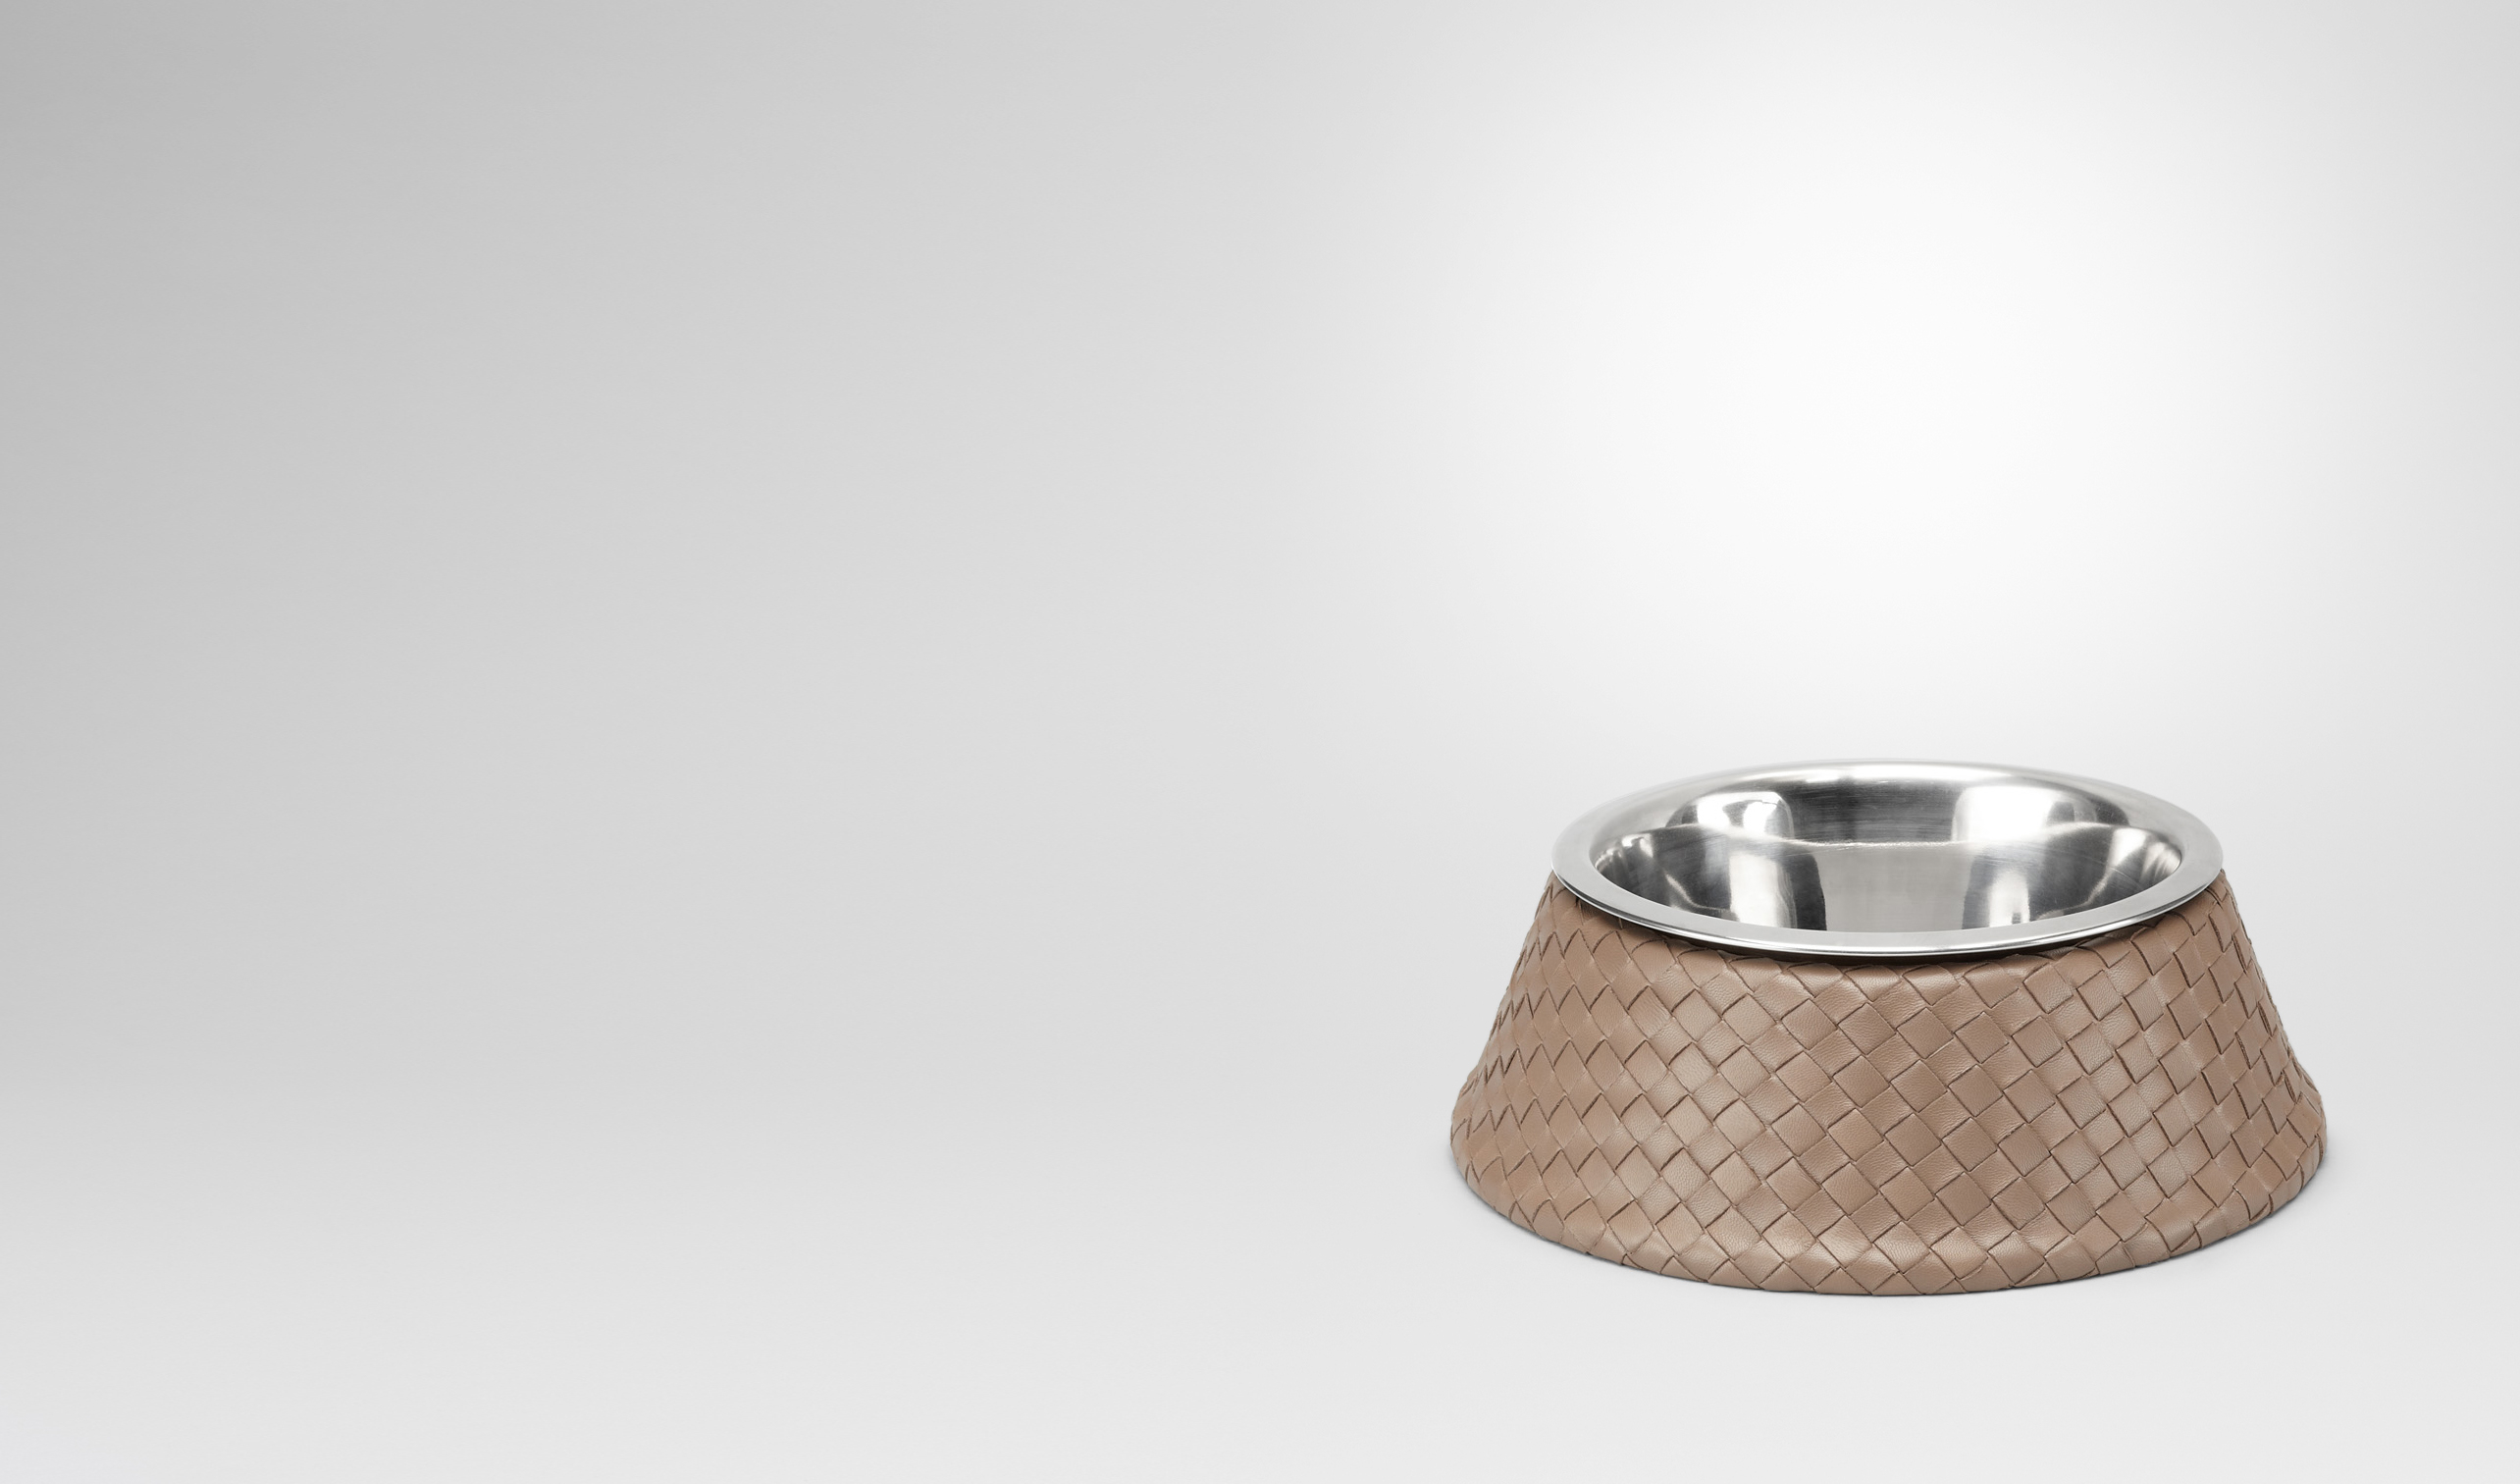 BOTTEGA VENETA Pet Accessory E Nero Palladio Intrecciato VN Brushed Steel Dog Bowl pl